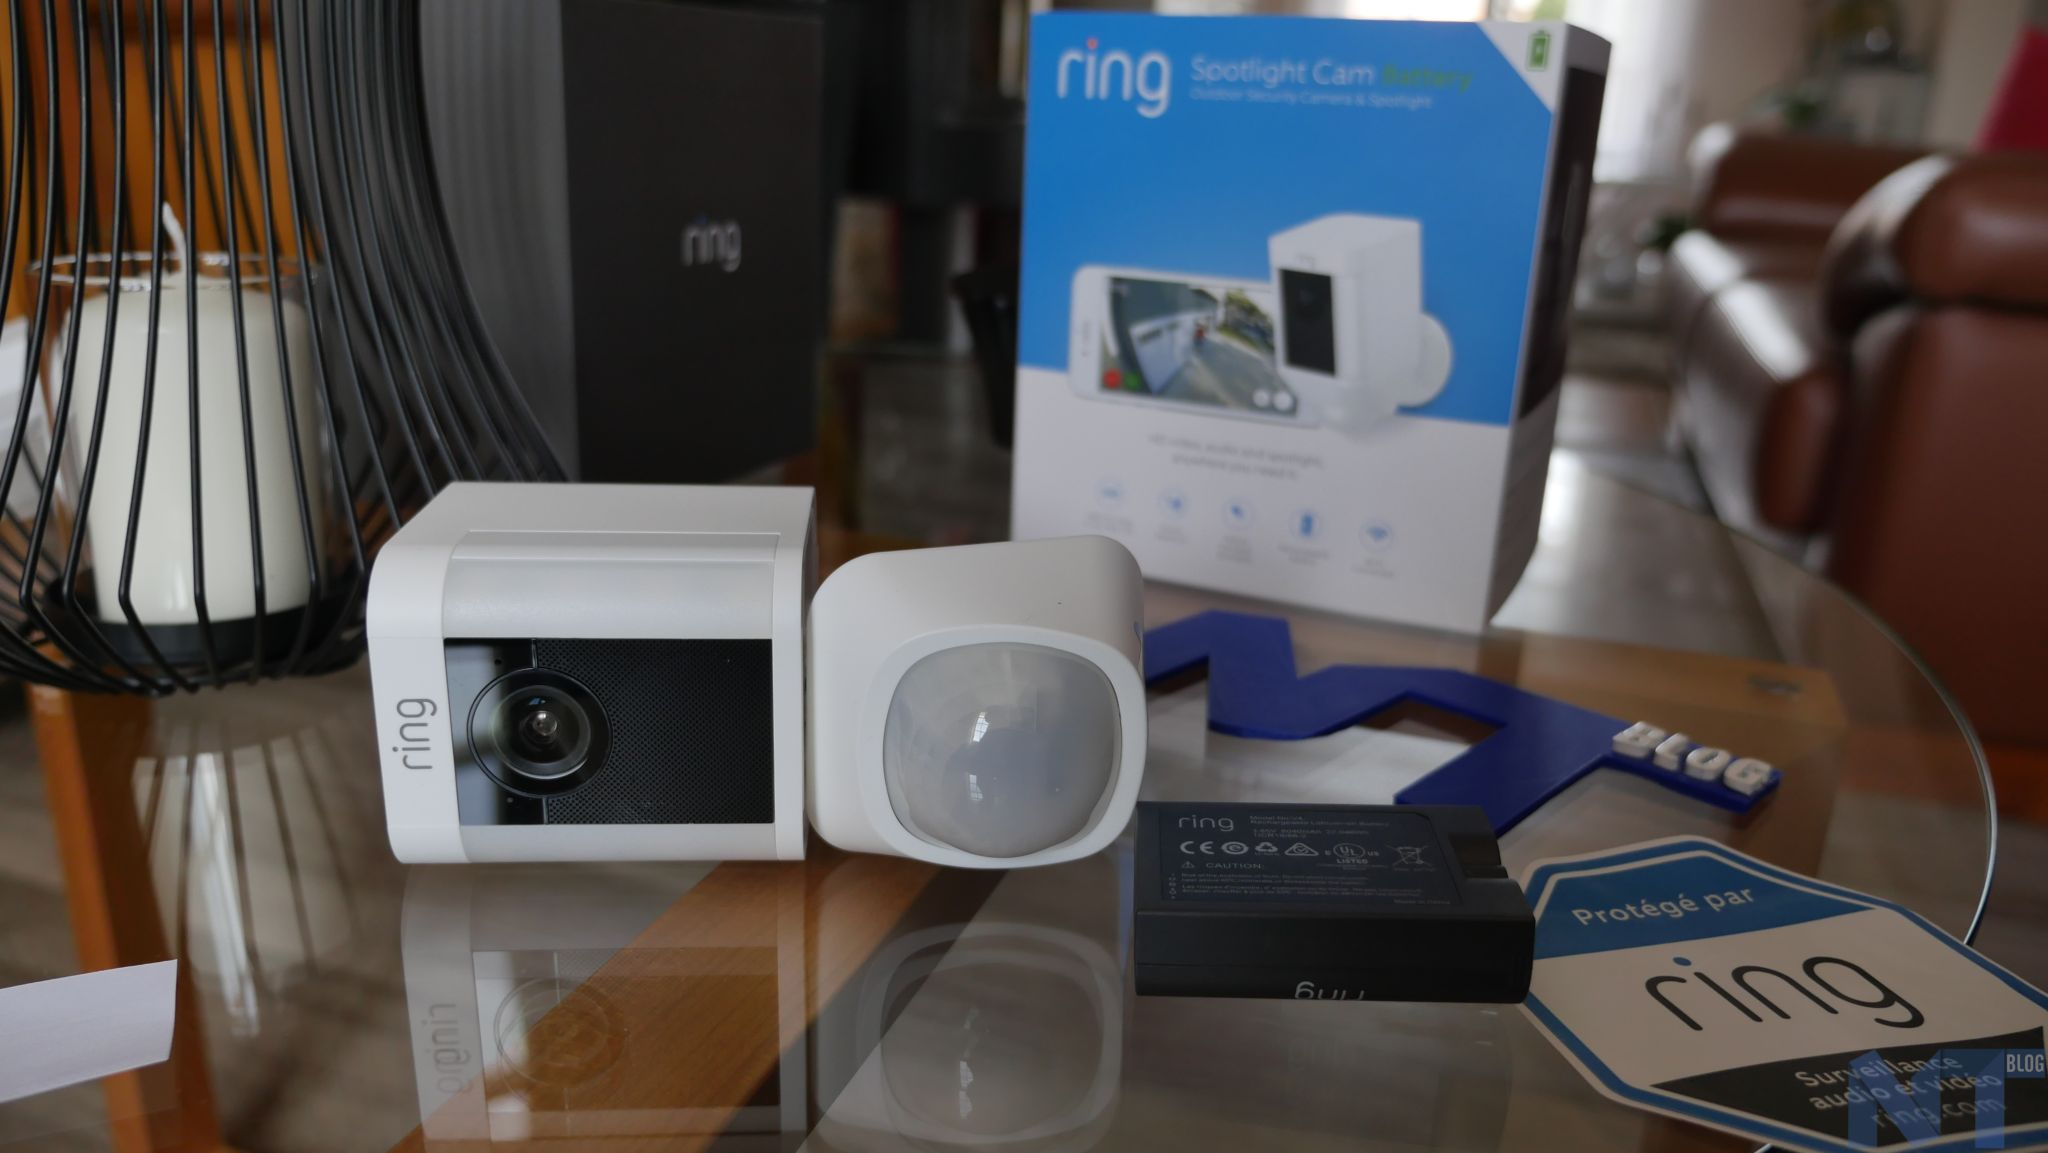 Camera Exterieur Ring Test De La Ring Spotlight Cam Battery Une Excellente